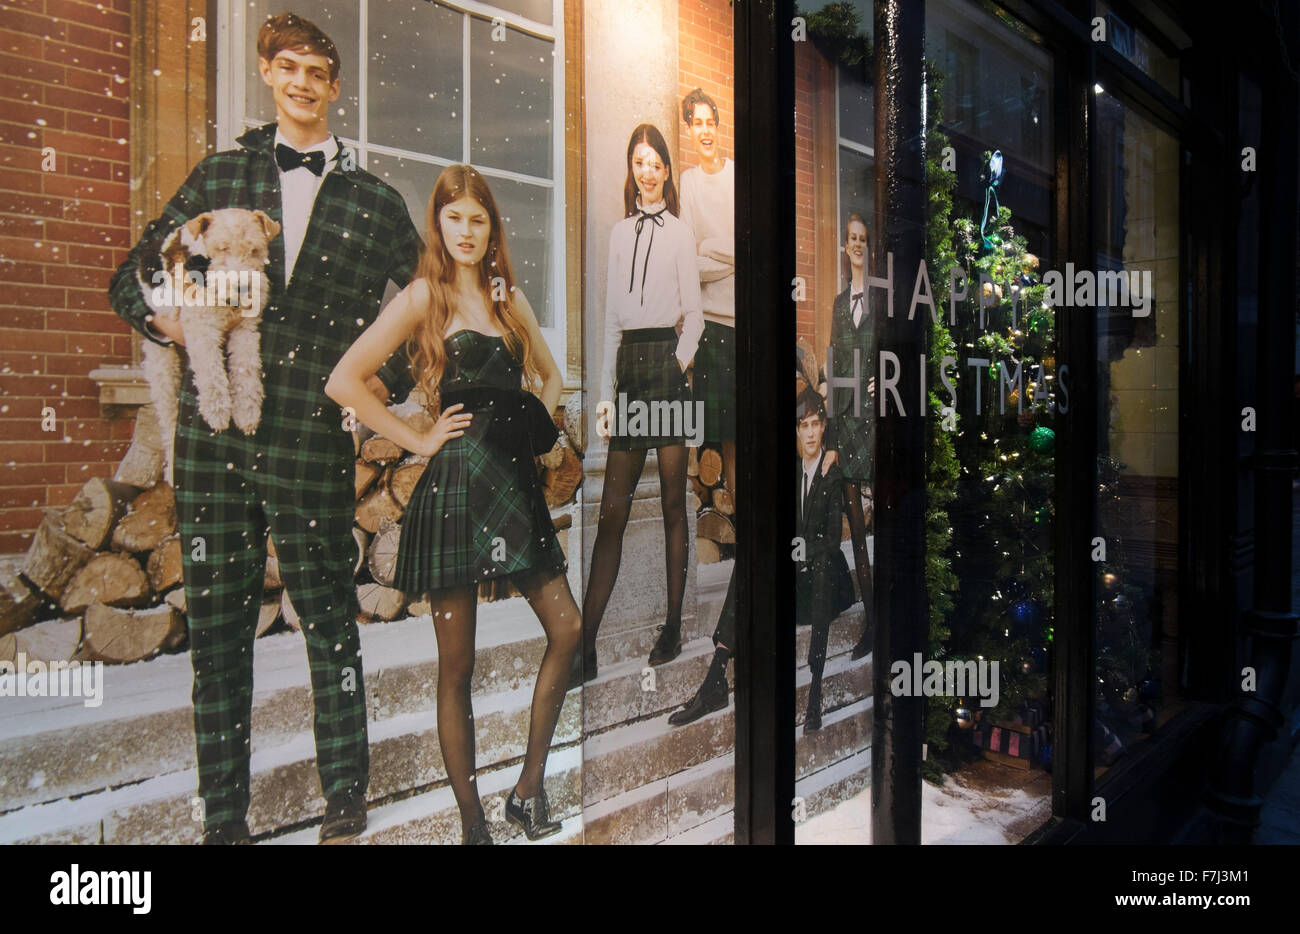 The windows display of clothes shop Jack Wills in Kingly Street, London, England, UK - Stock Image